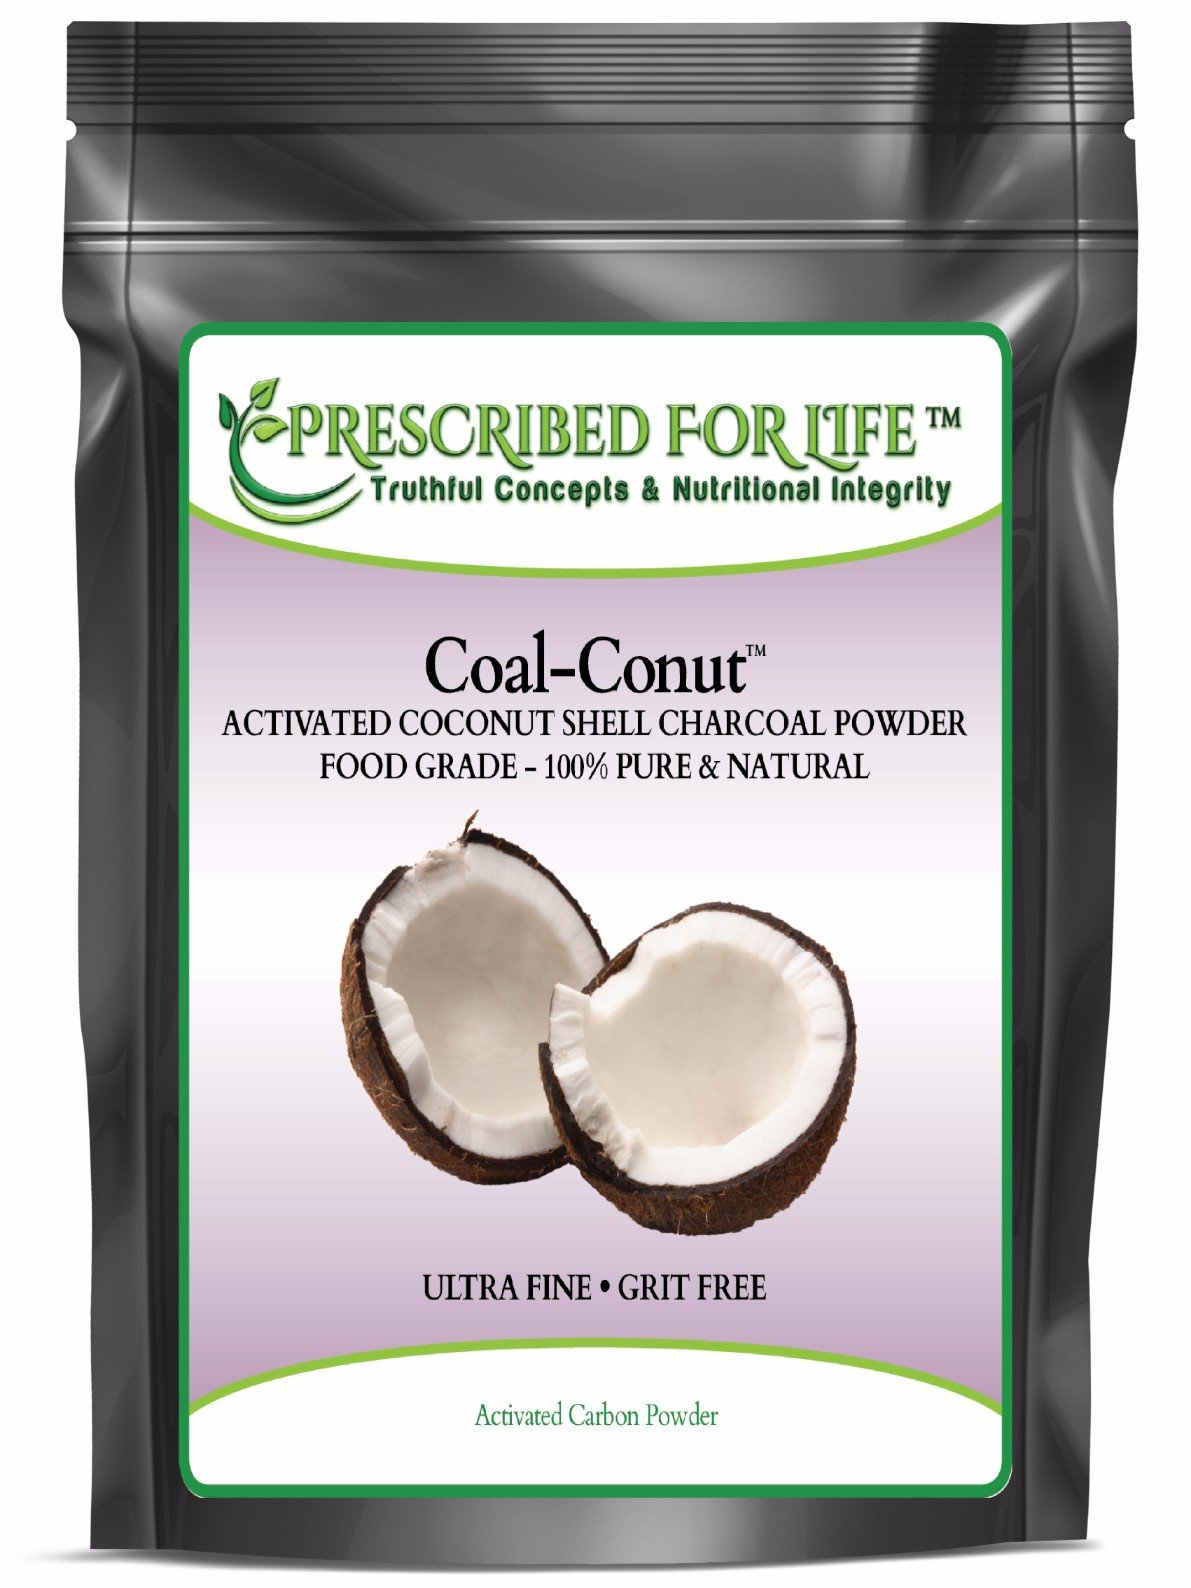 Coal-Conut (TM) - Activated Coconut Shell Charcoal Fine Husk Food Grade Powder (Ultra-Fine) - Organic Approved, 44 lb